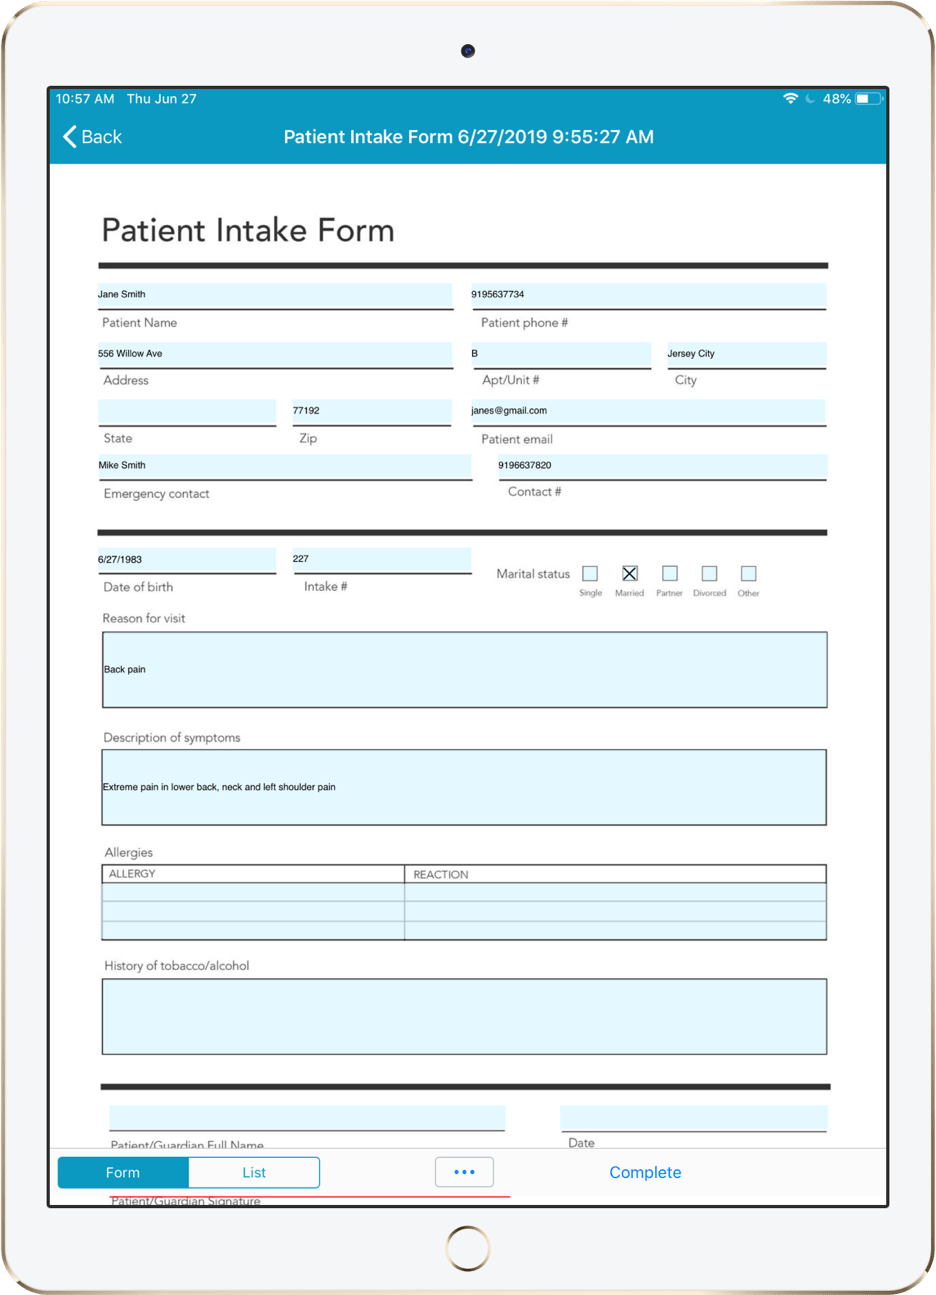 A digital patient intake form shown on a tablet.